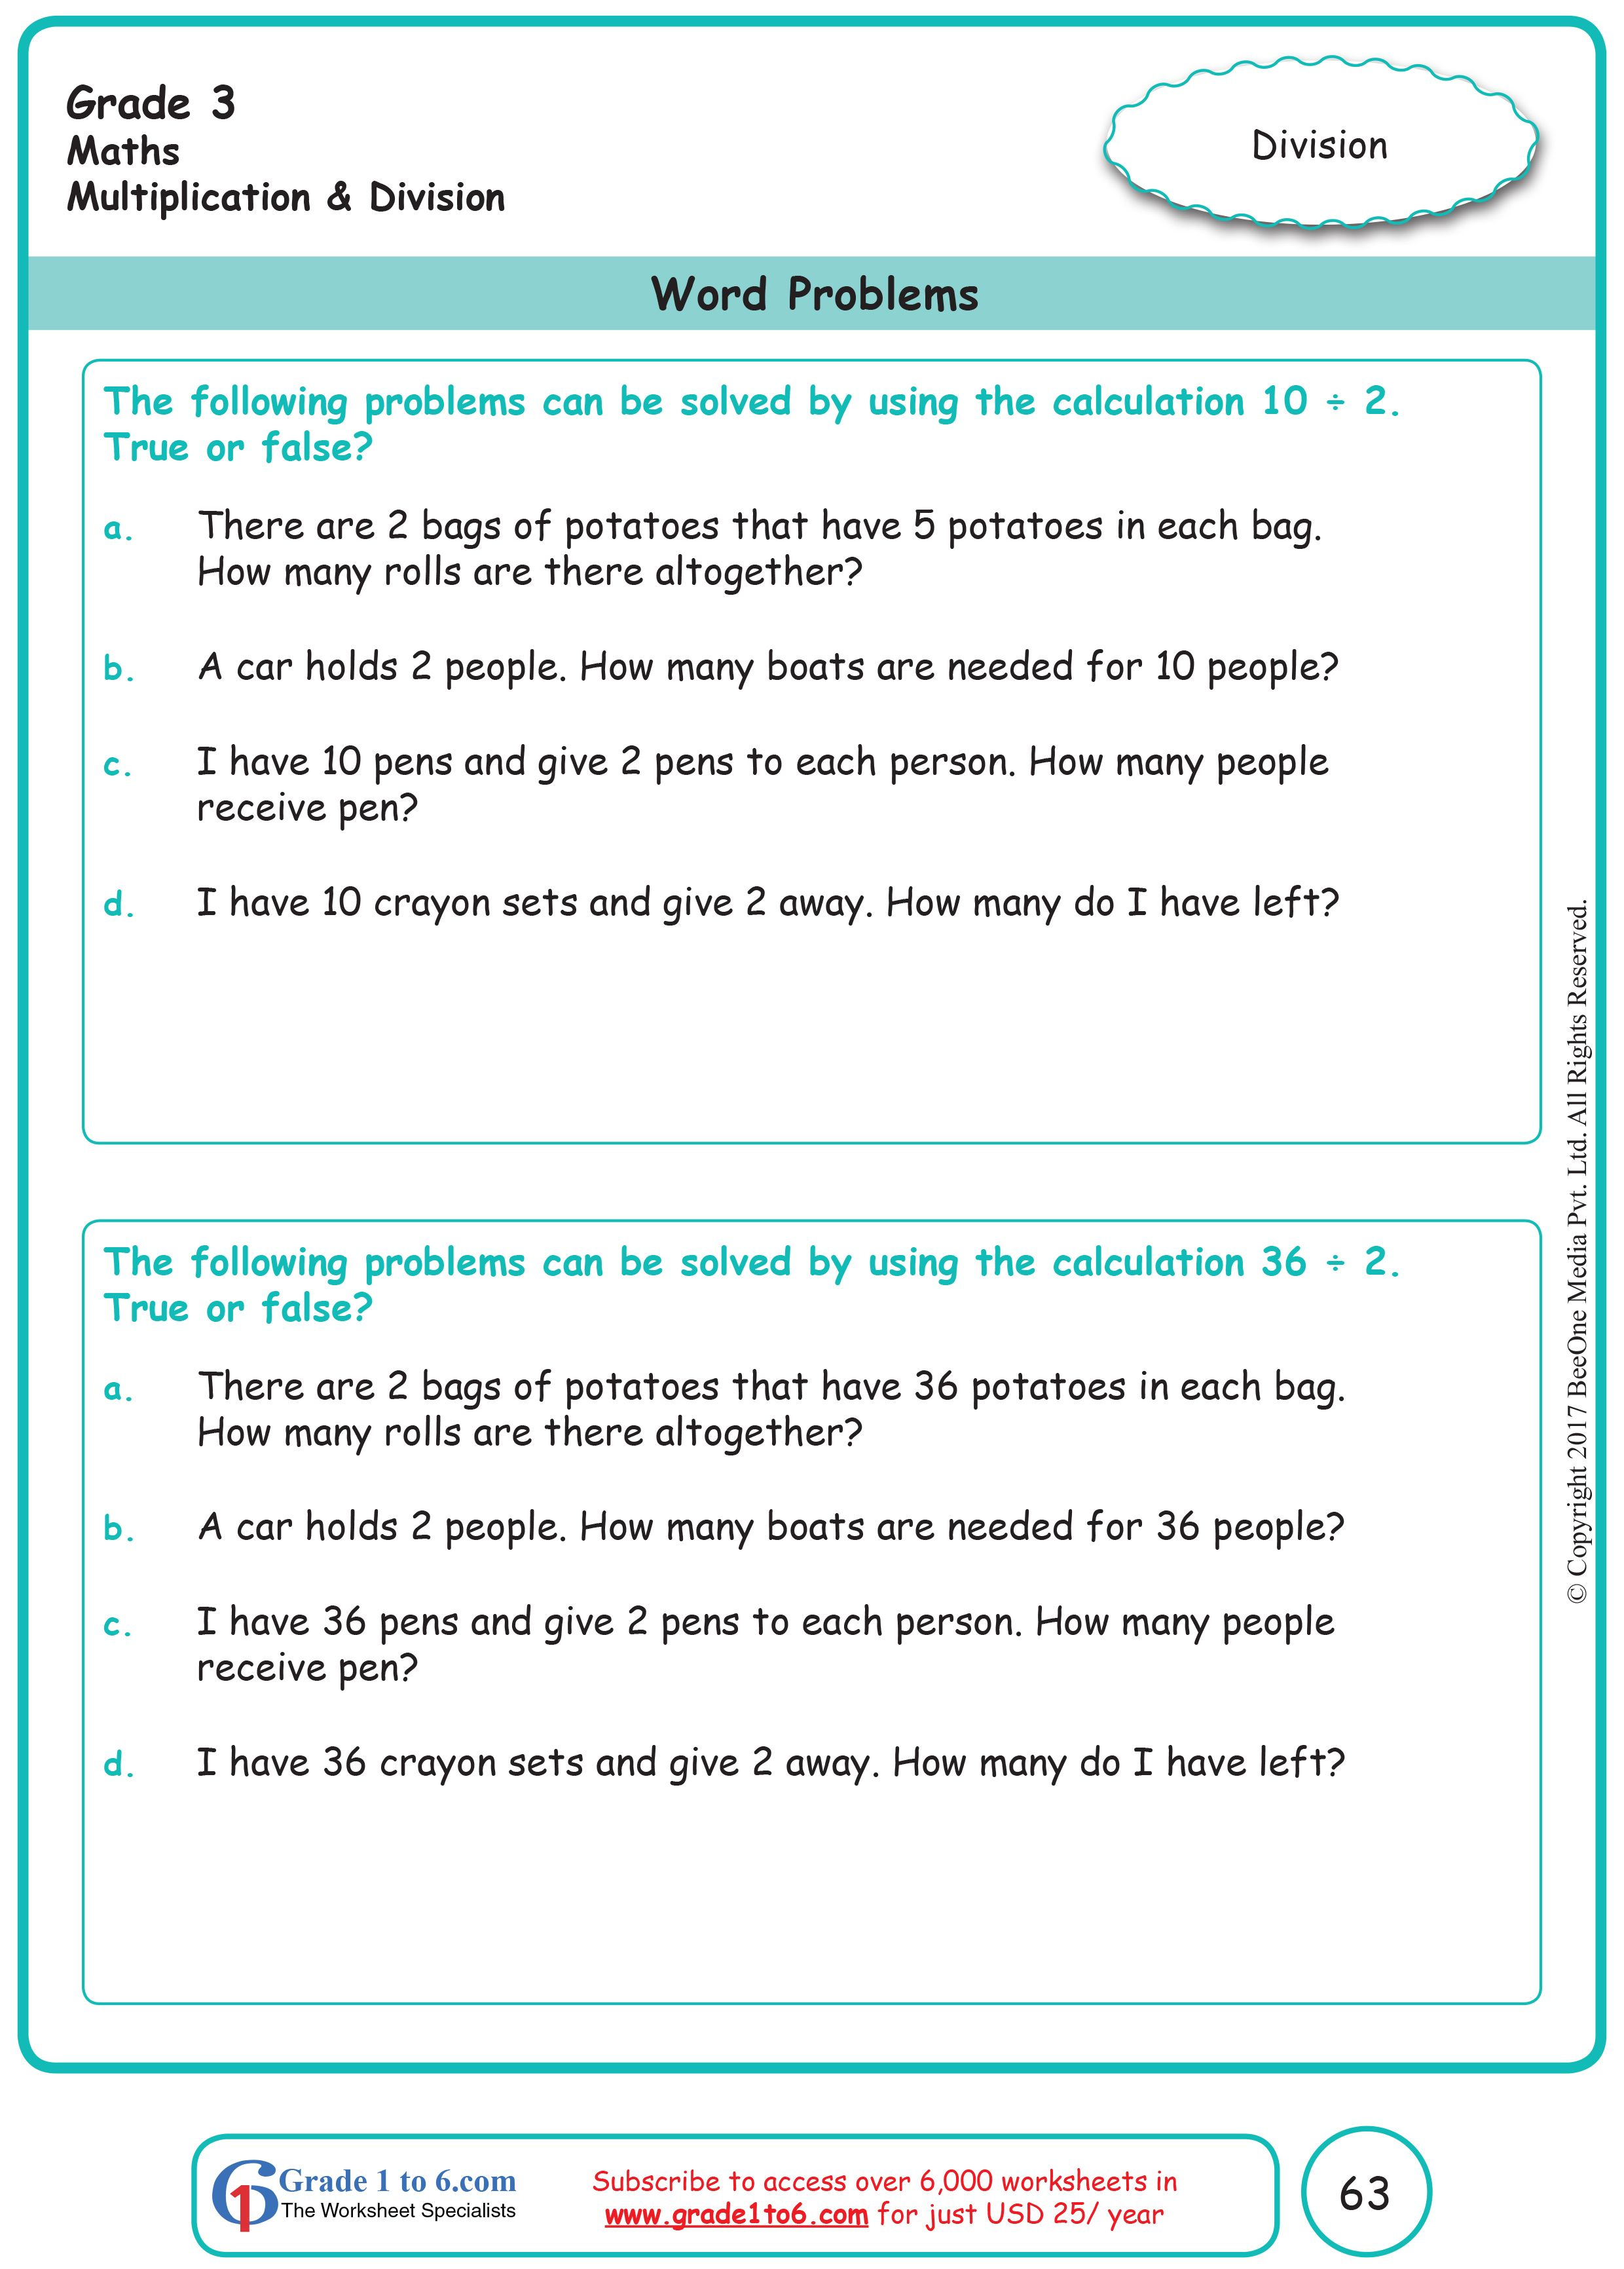 Word Problems in Multiplication \u0026 Division Grade 3 Math   Free math  worksheets [ 3464 x 2480 Pixel ]